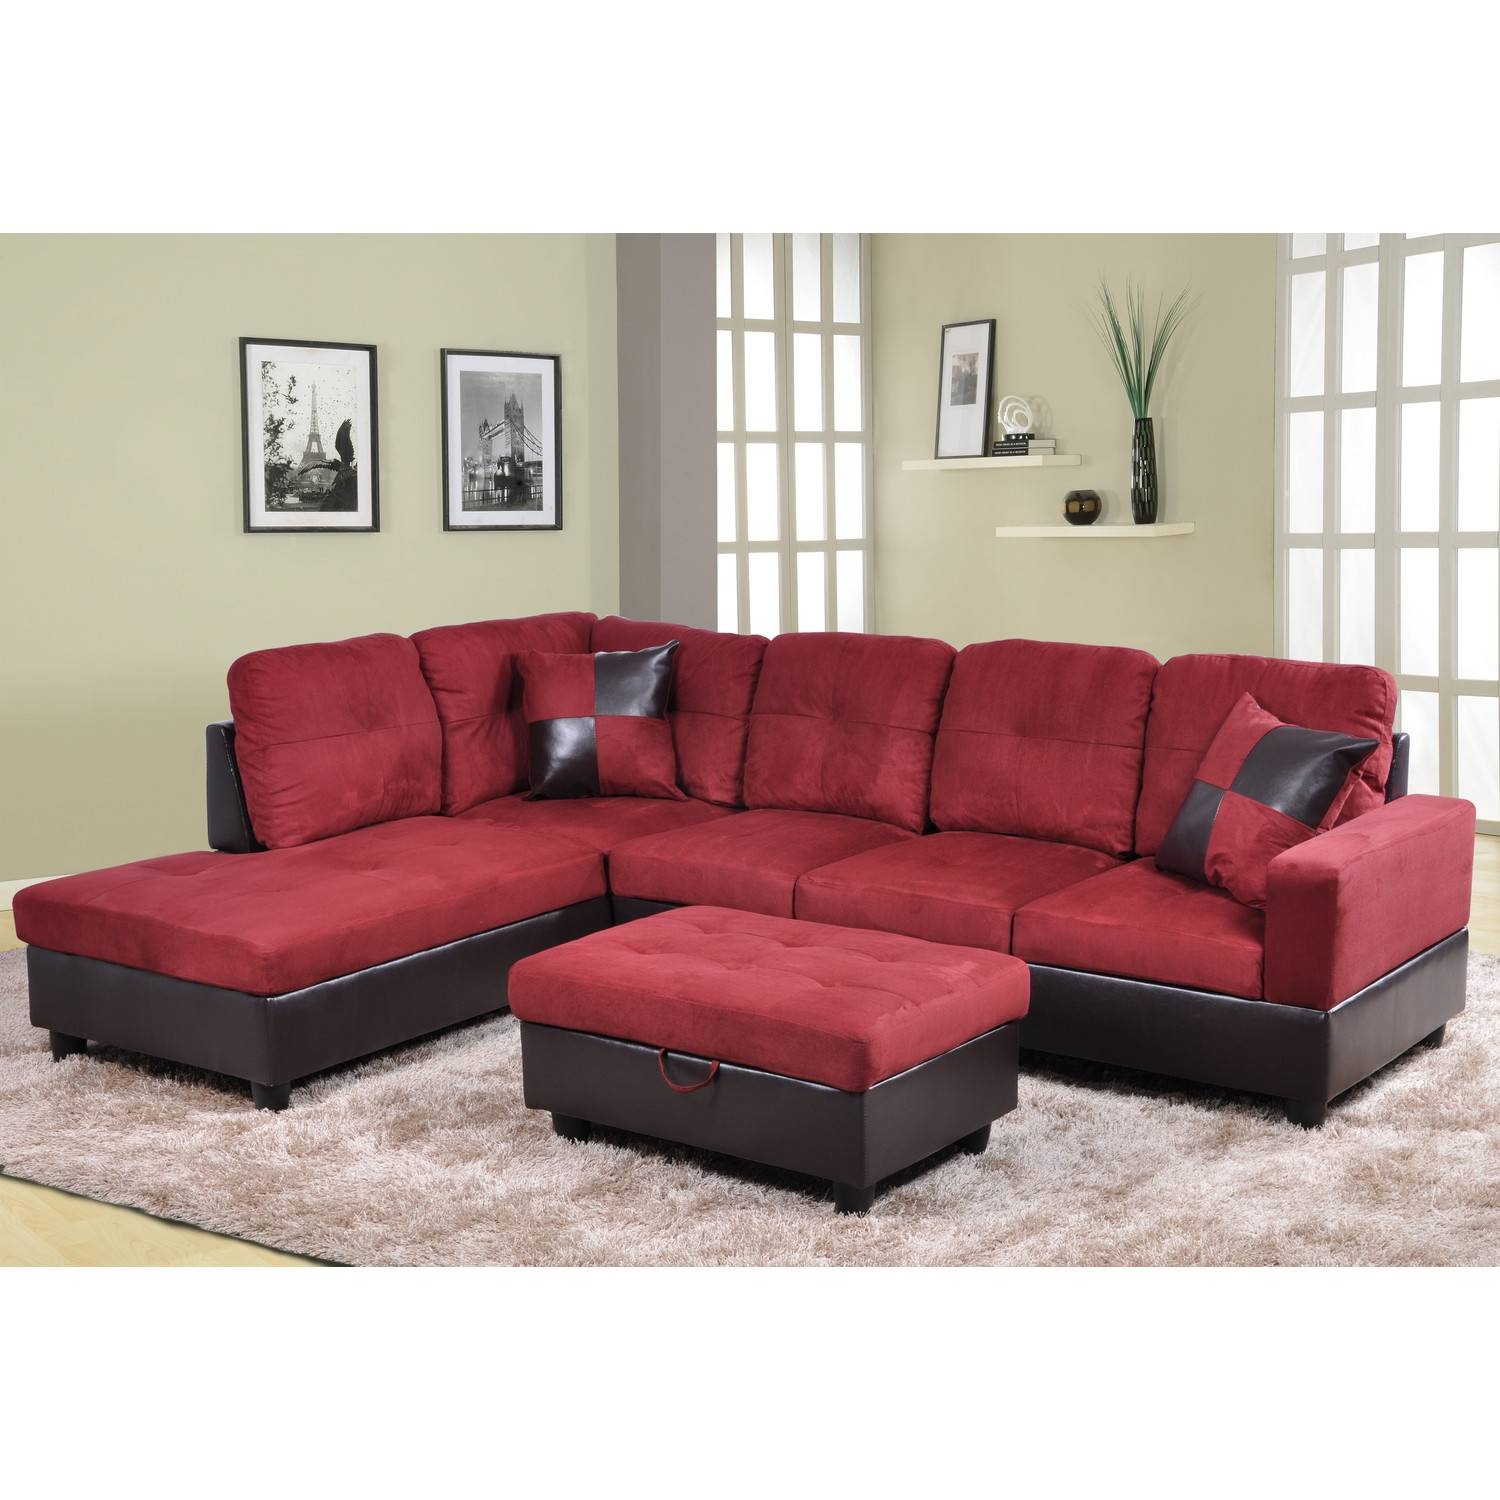 Cheap Sectional Sofa | Roselawnlutheran throughout Cheap Red Sofas (Image 6 of 30)